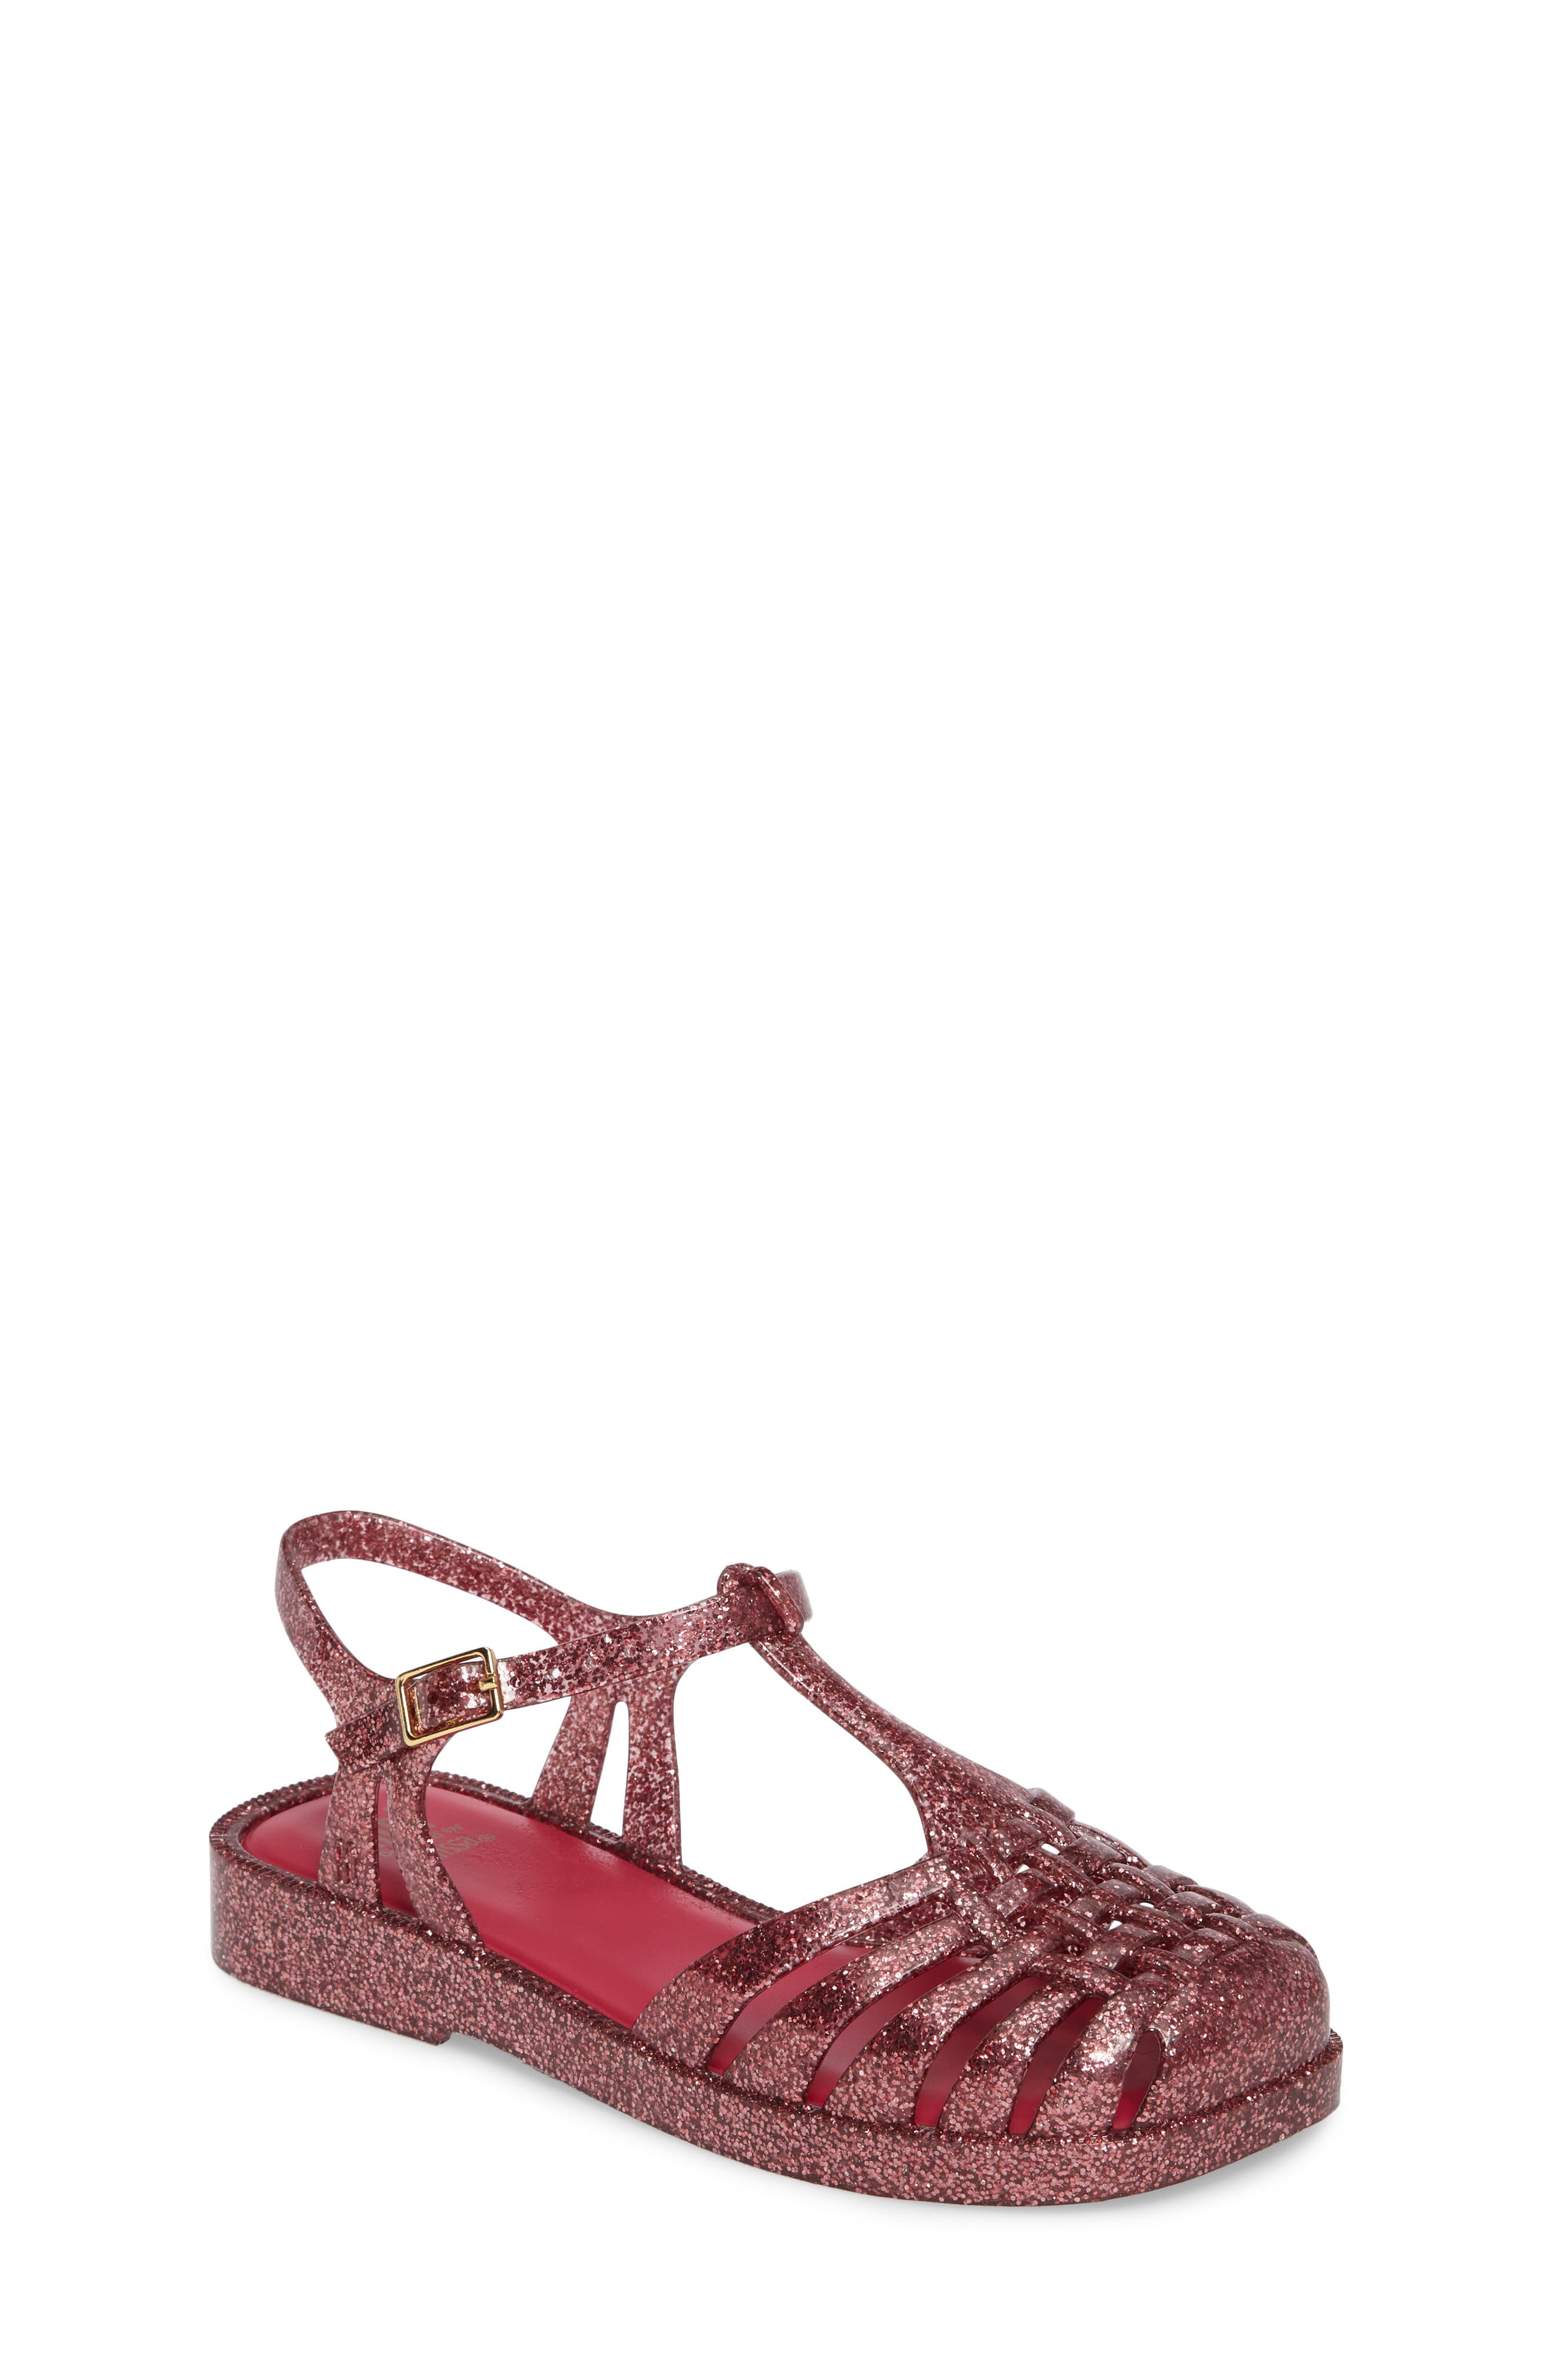 Mel by Melissa Aranha Quadrada Sandal (Toddler & Little Kid)